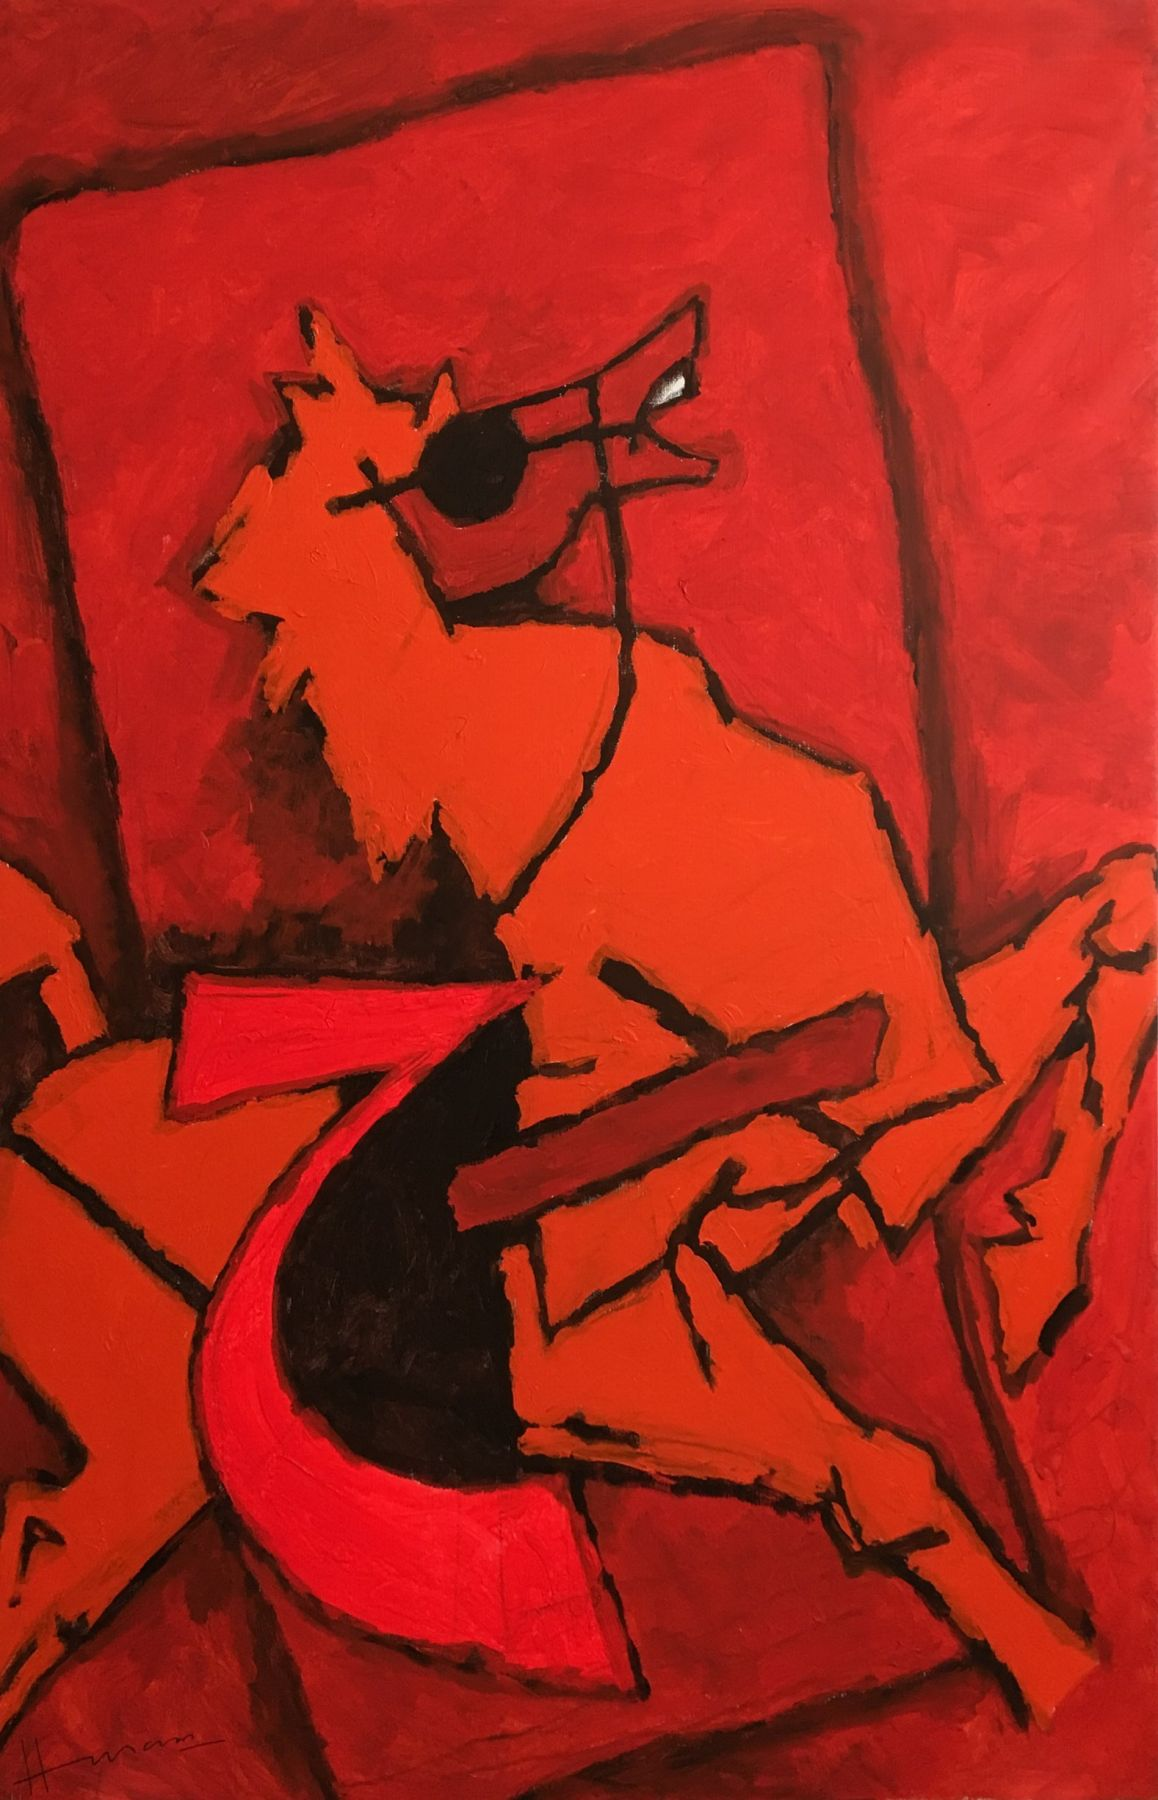 M. F. Husain   Untitled (red horse)  Acrylic on canvas  72 x 47.75 in